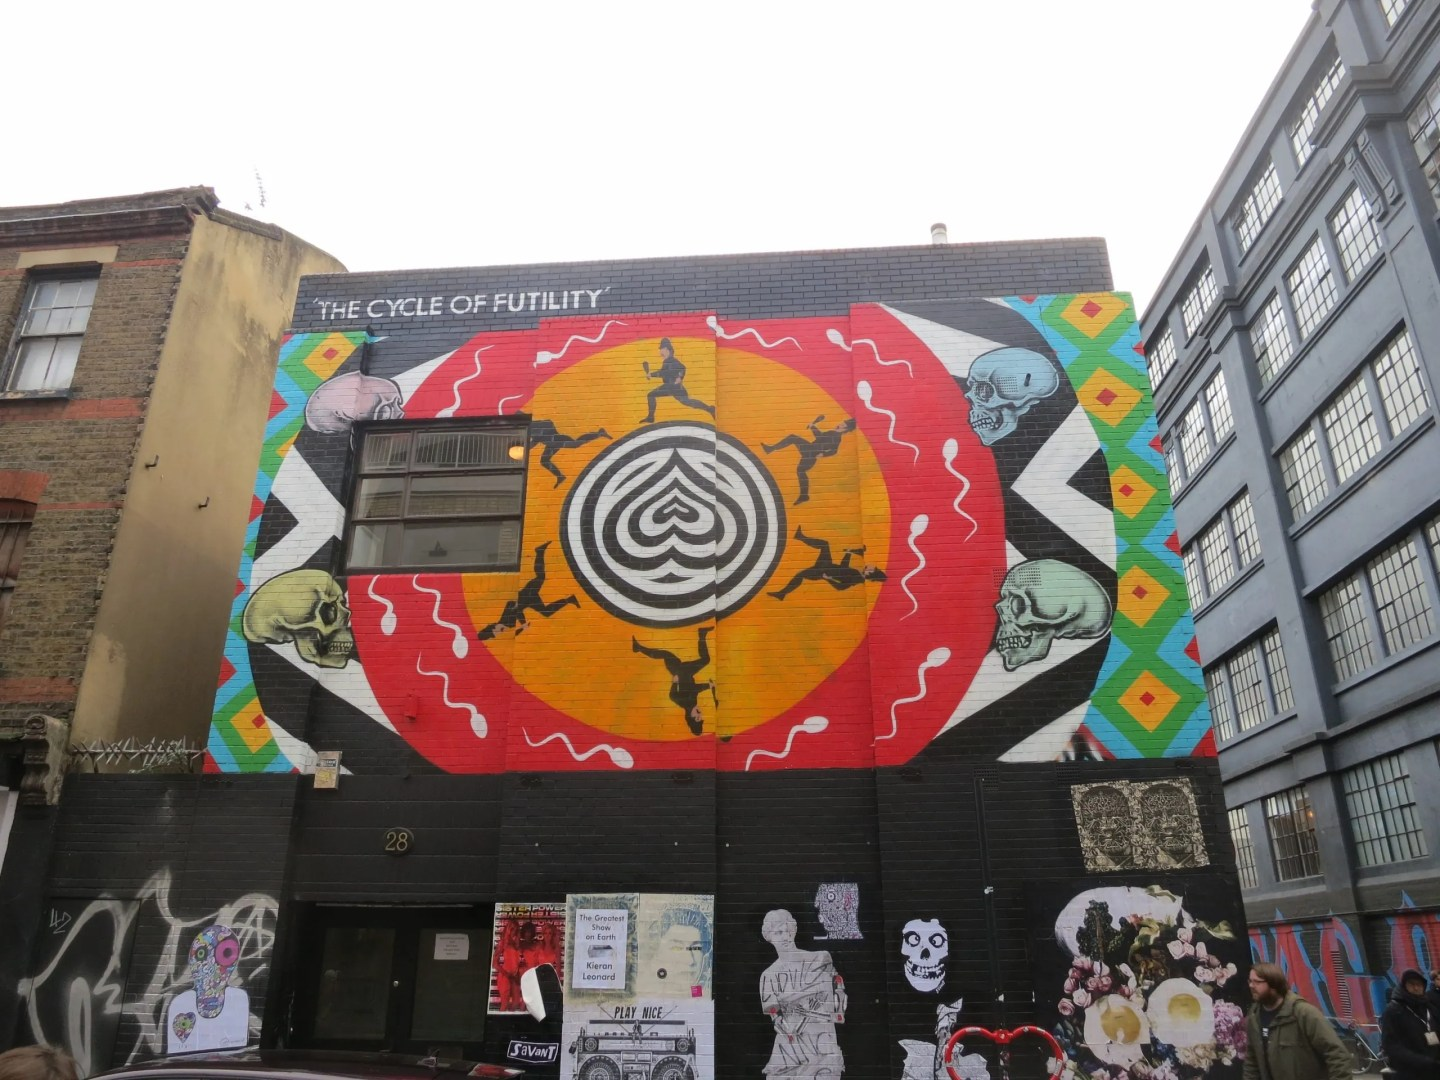 Cycle of Futility, INSA, Shoreditch, London